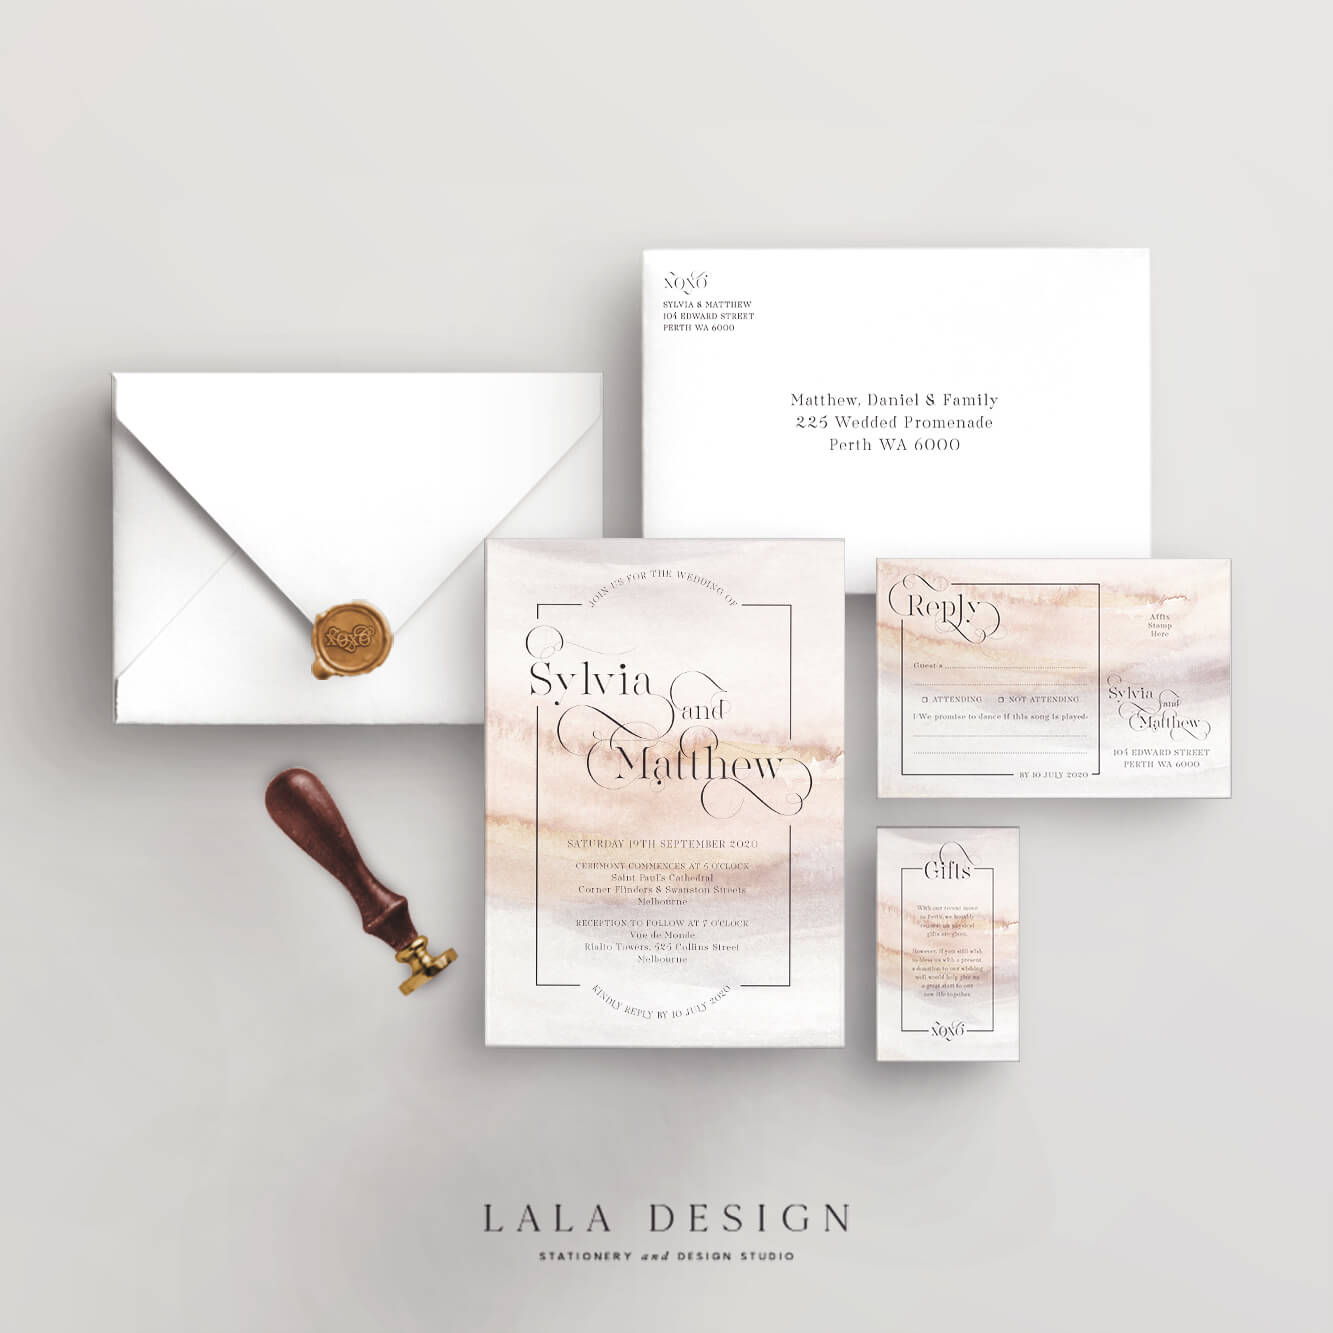 Wedding stationery full set | Praline - Perth WA